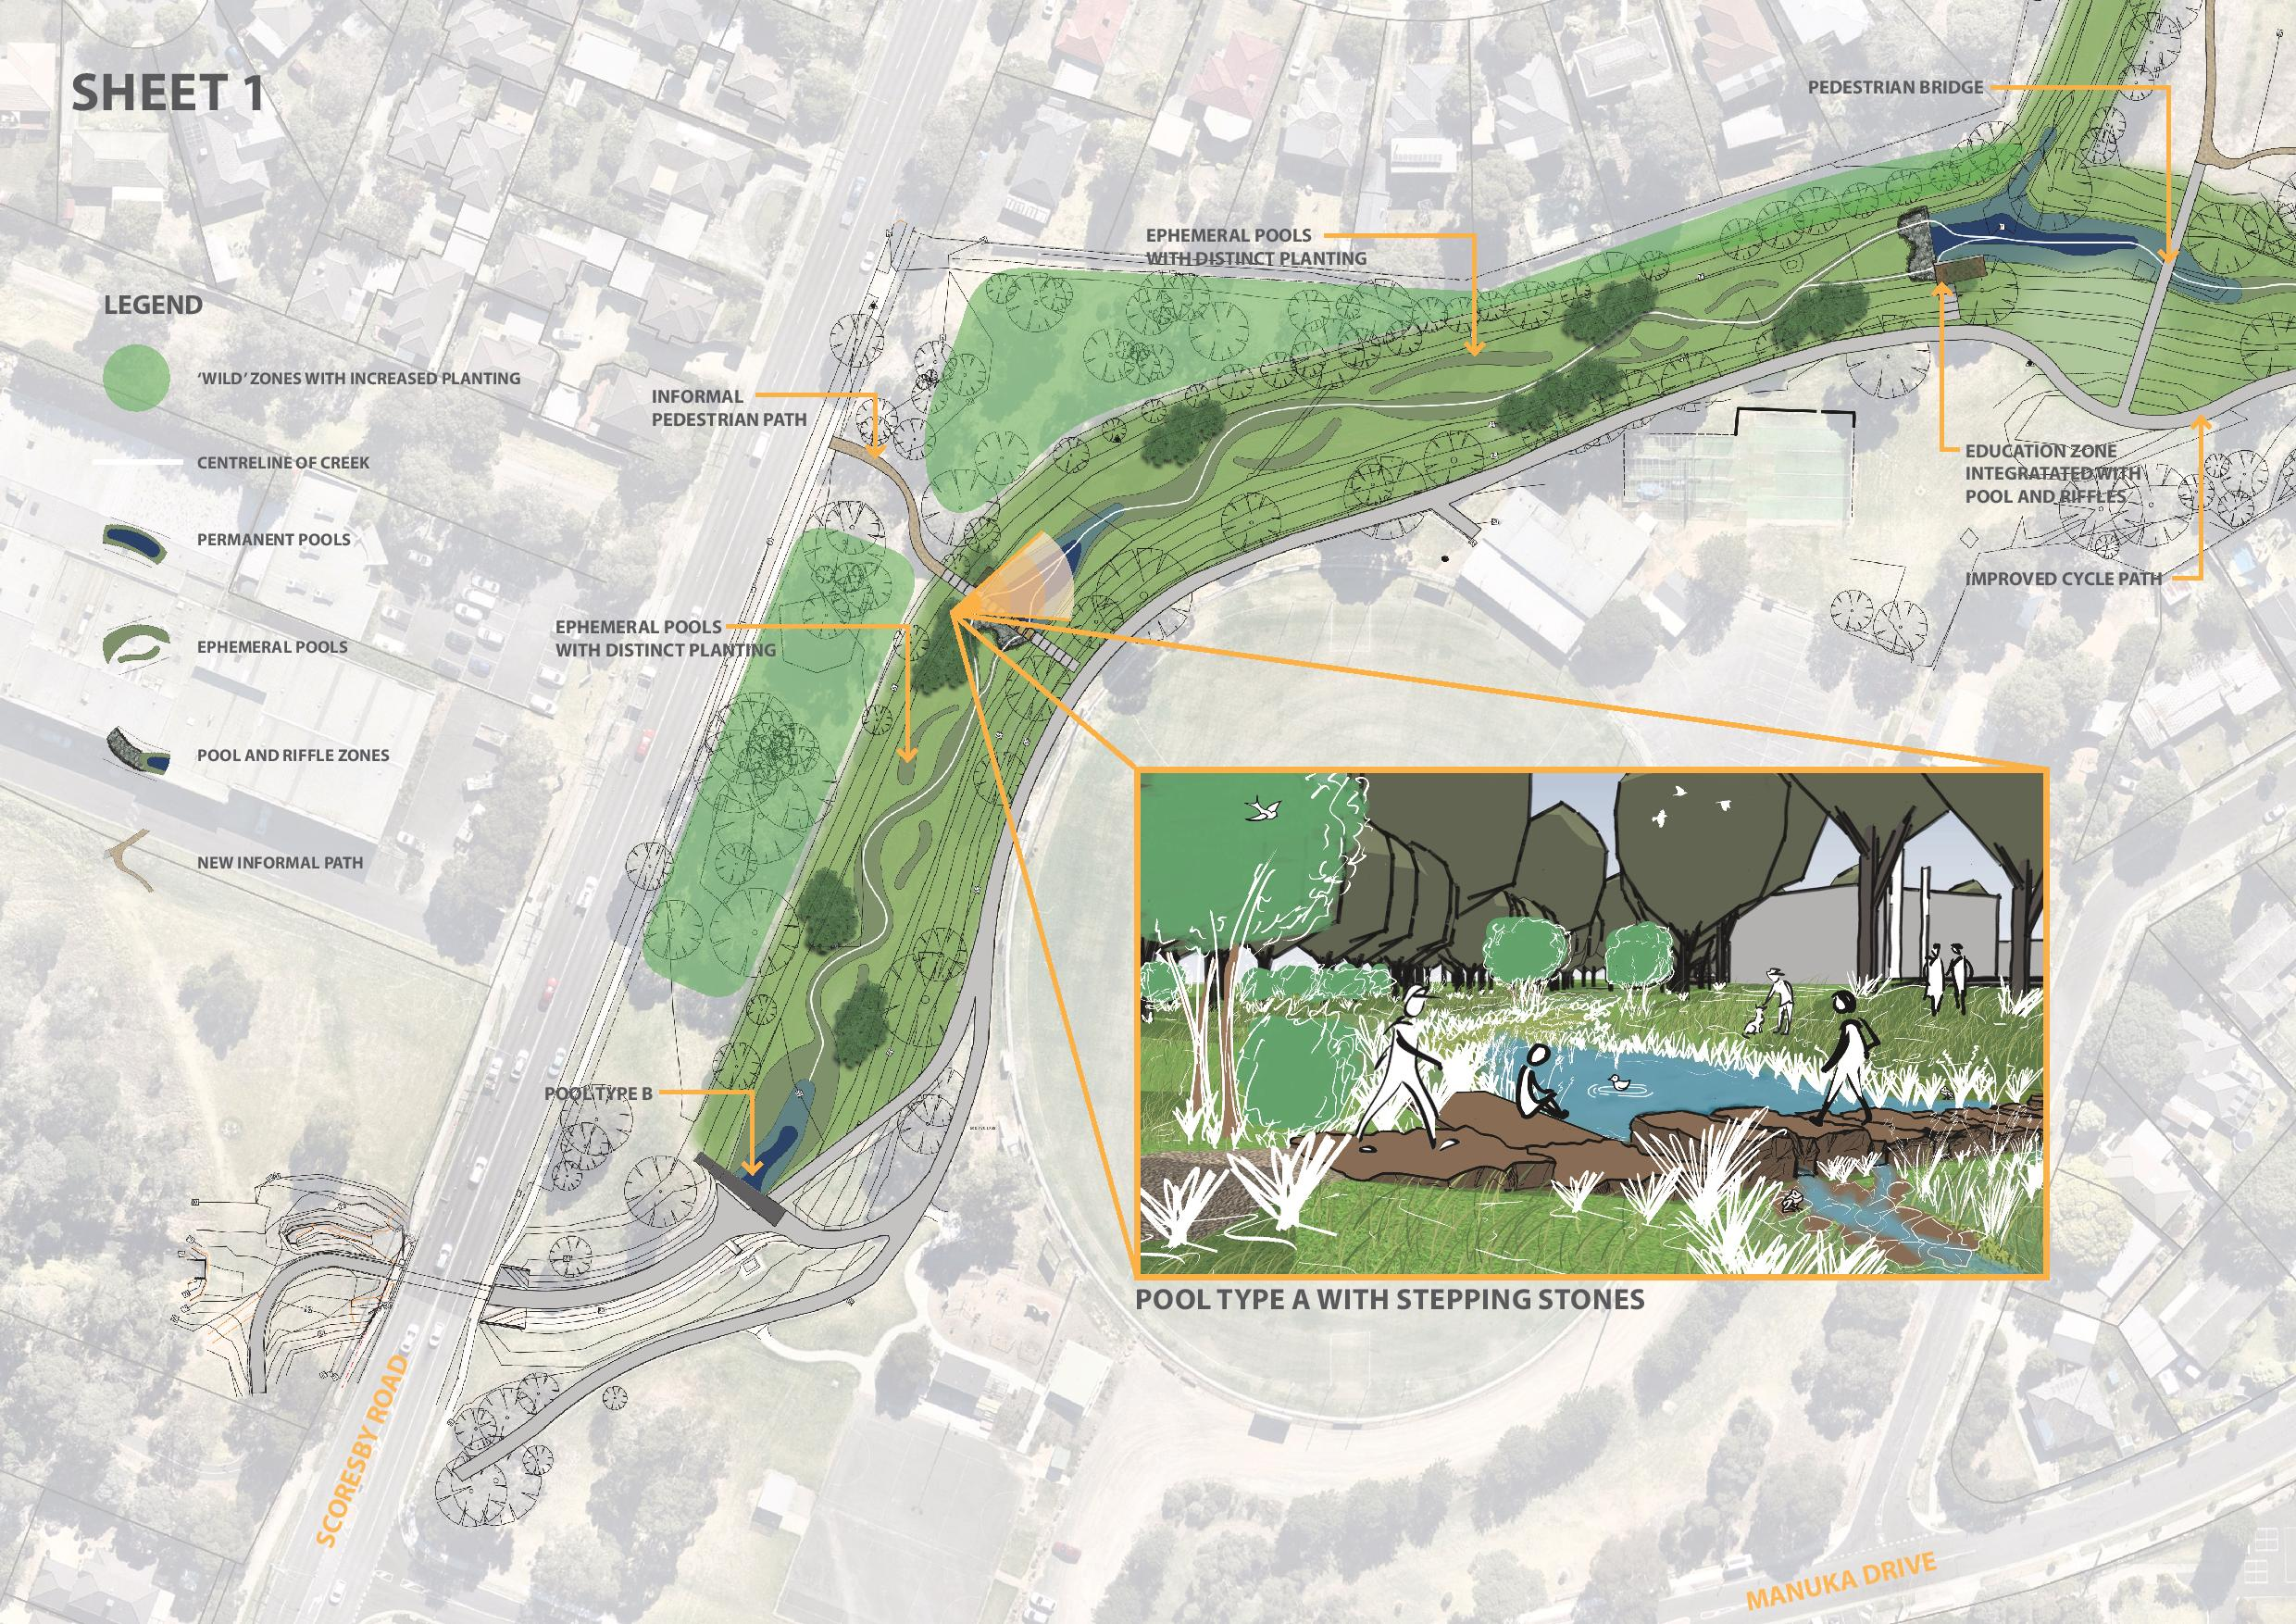 Artist illustration image showing new design features of wild zone with increased plantings